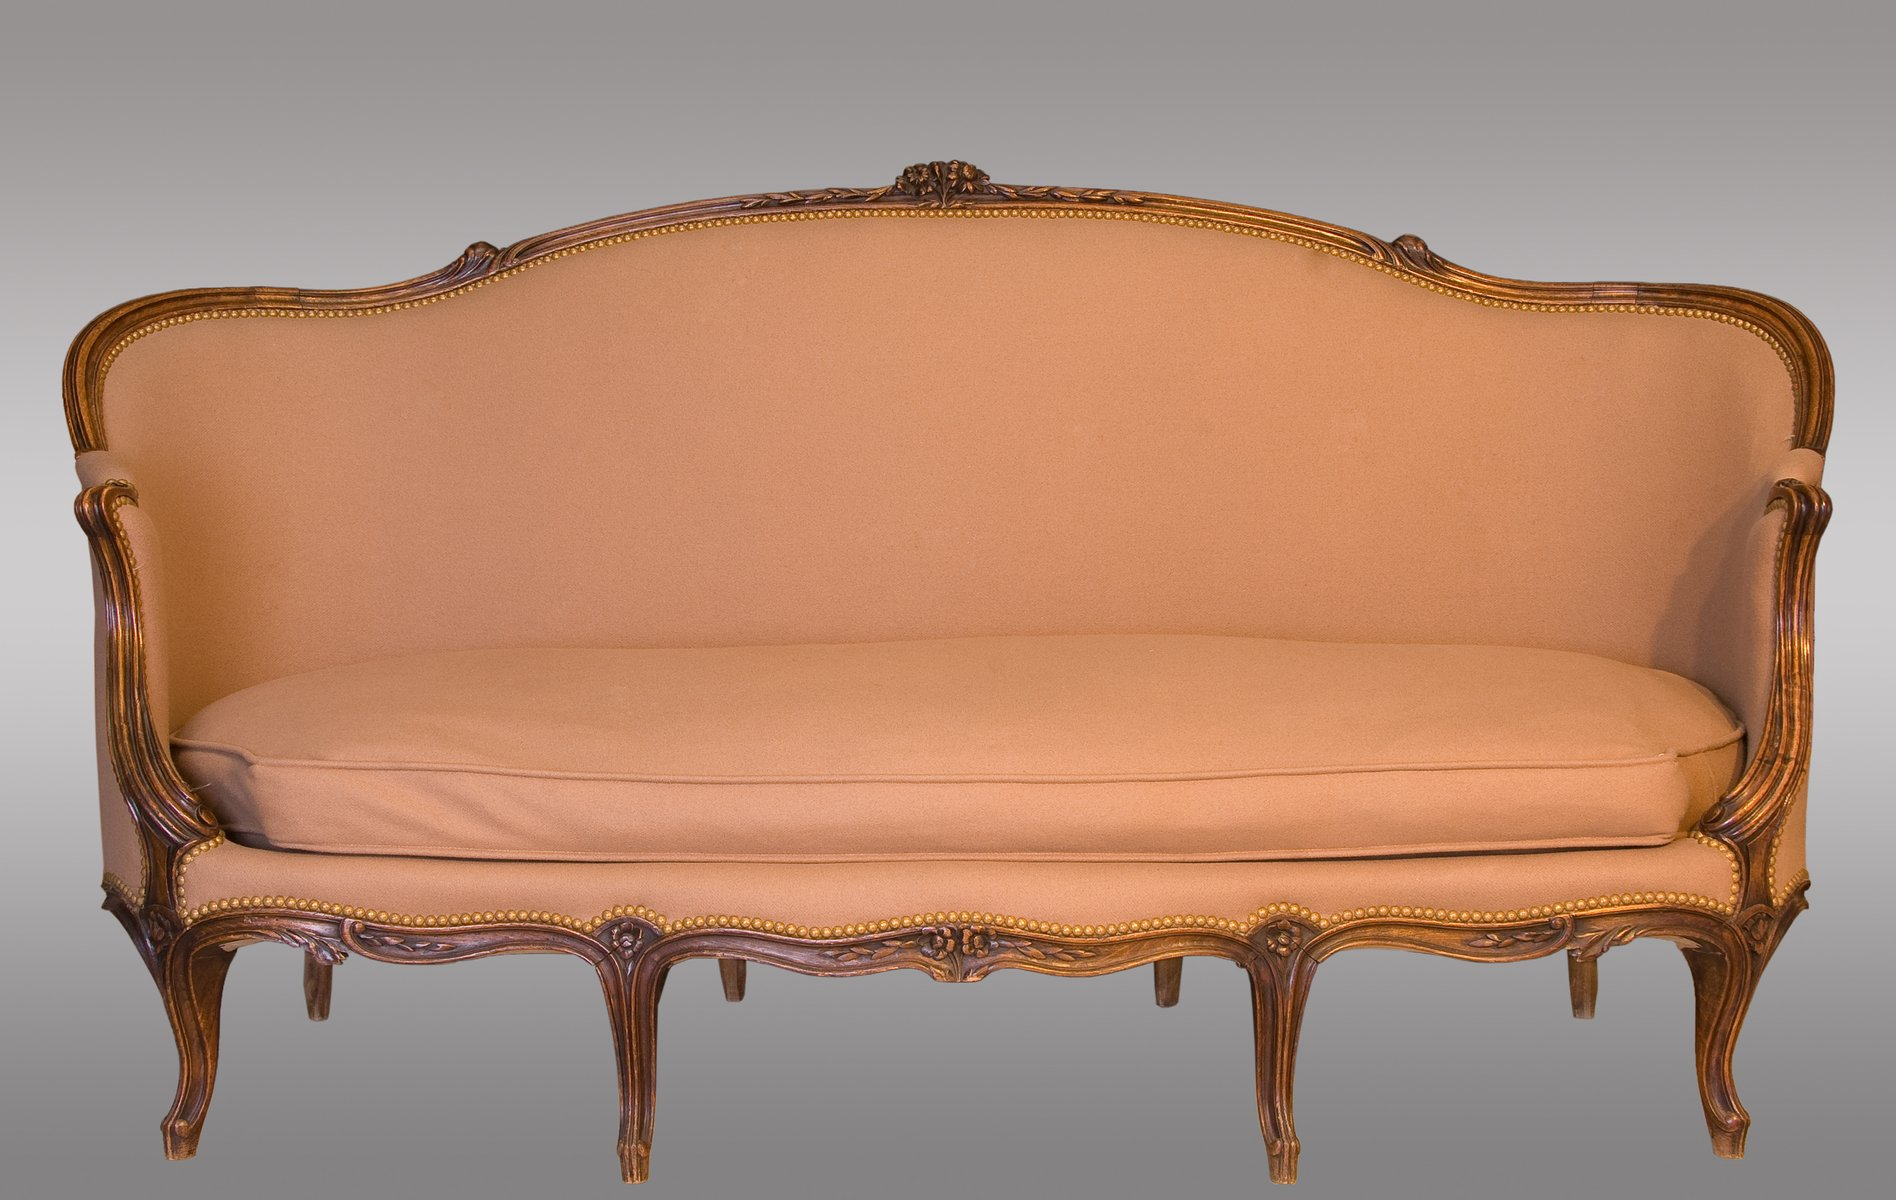 Antique french louis xv canap for sale at pamono for Canape for sale